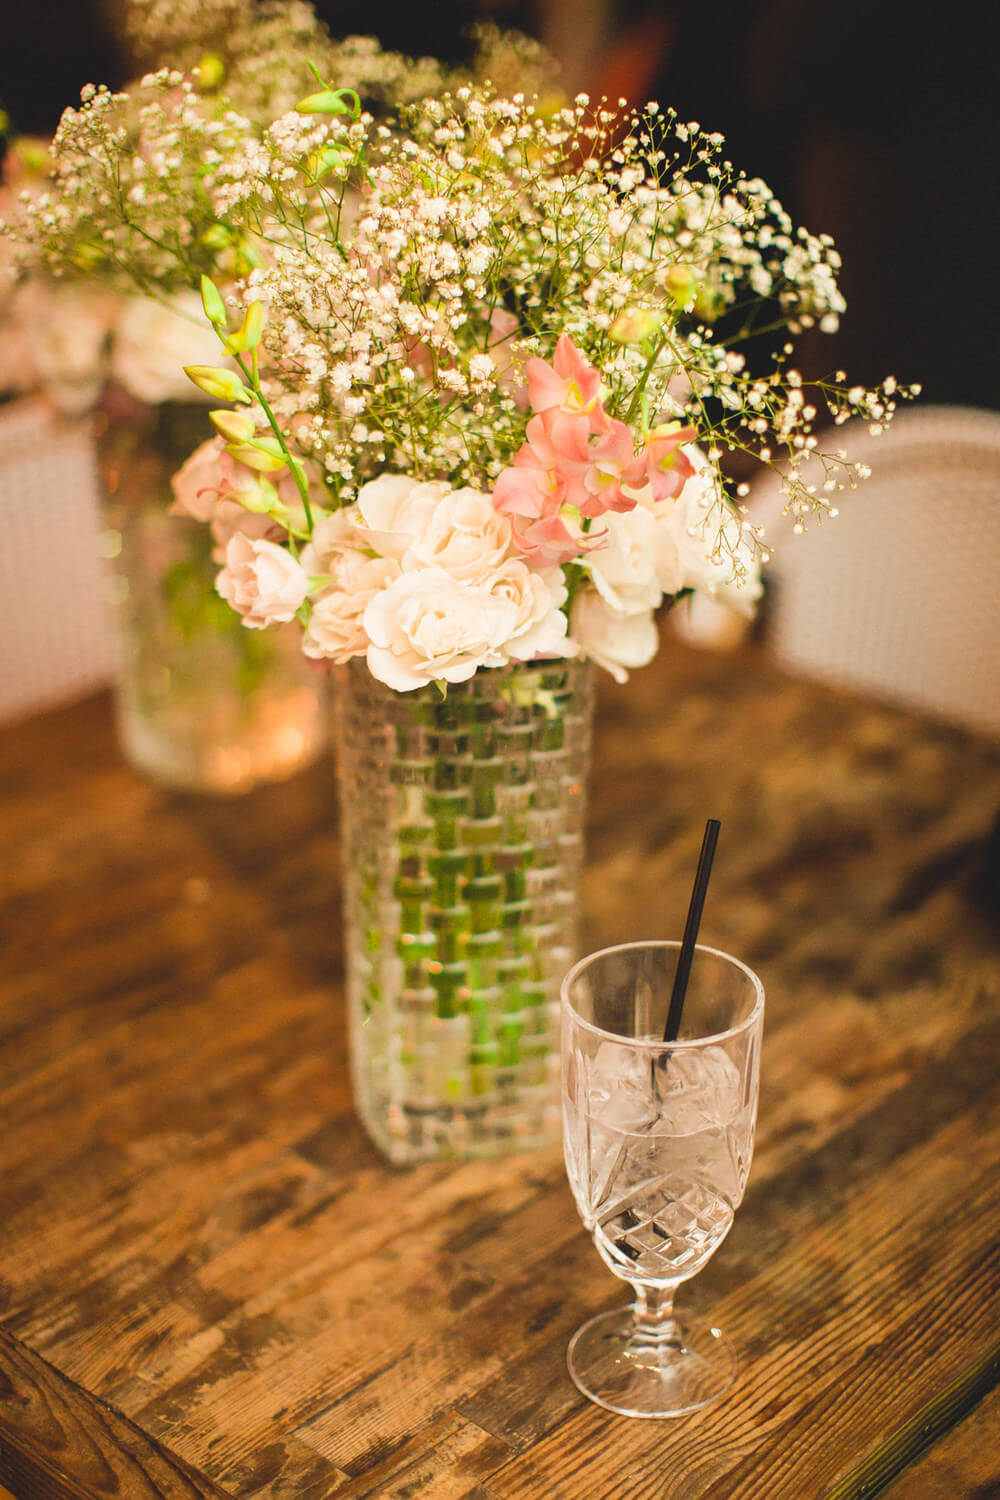 the-light-and-glass-wedding-engagement-photography-20151218-088.jpg